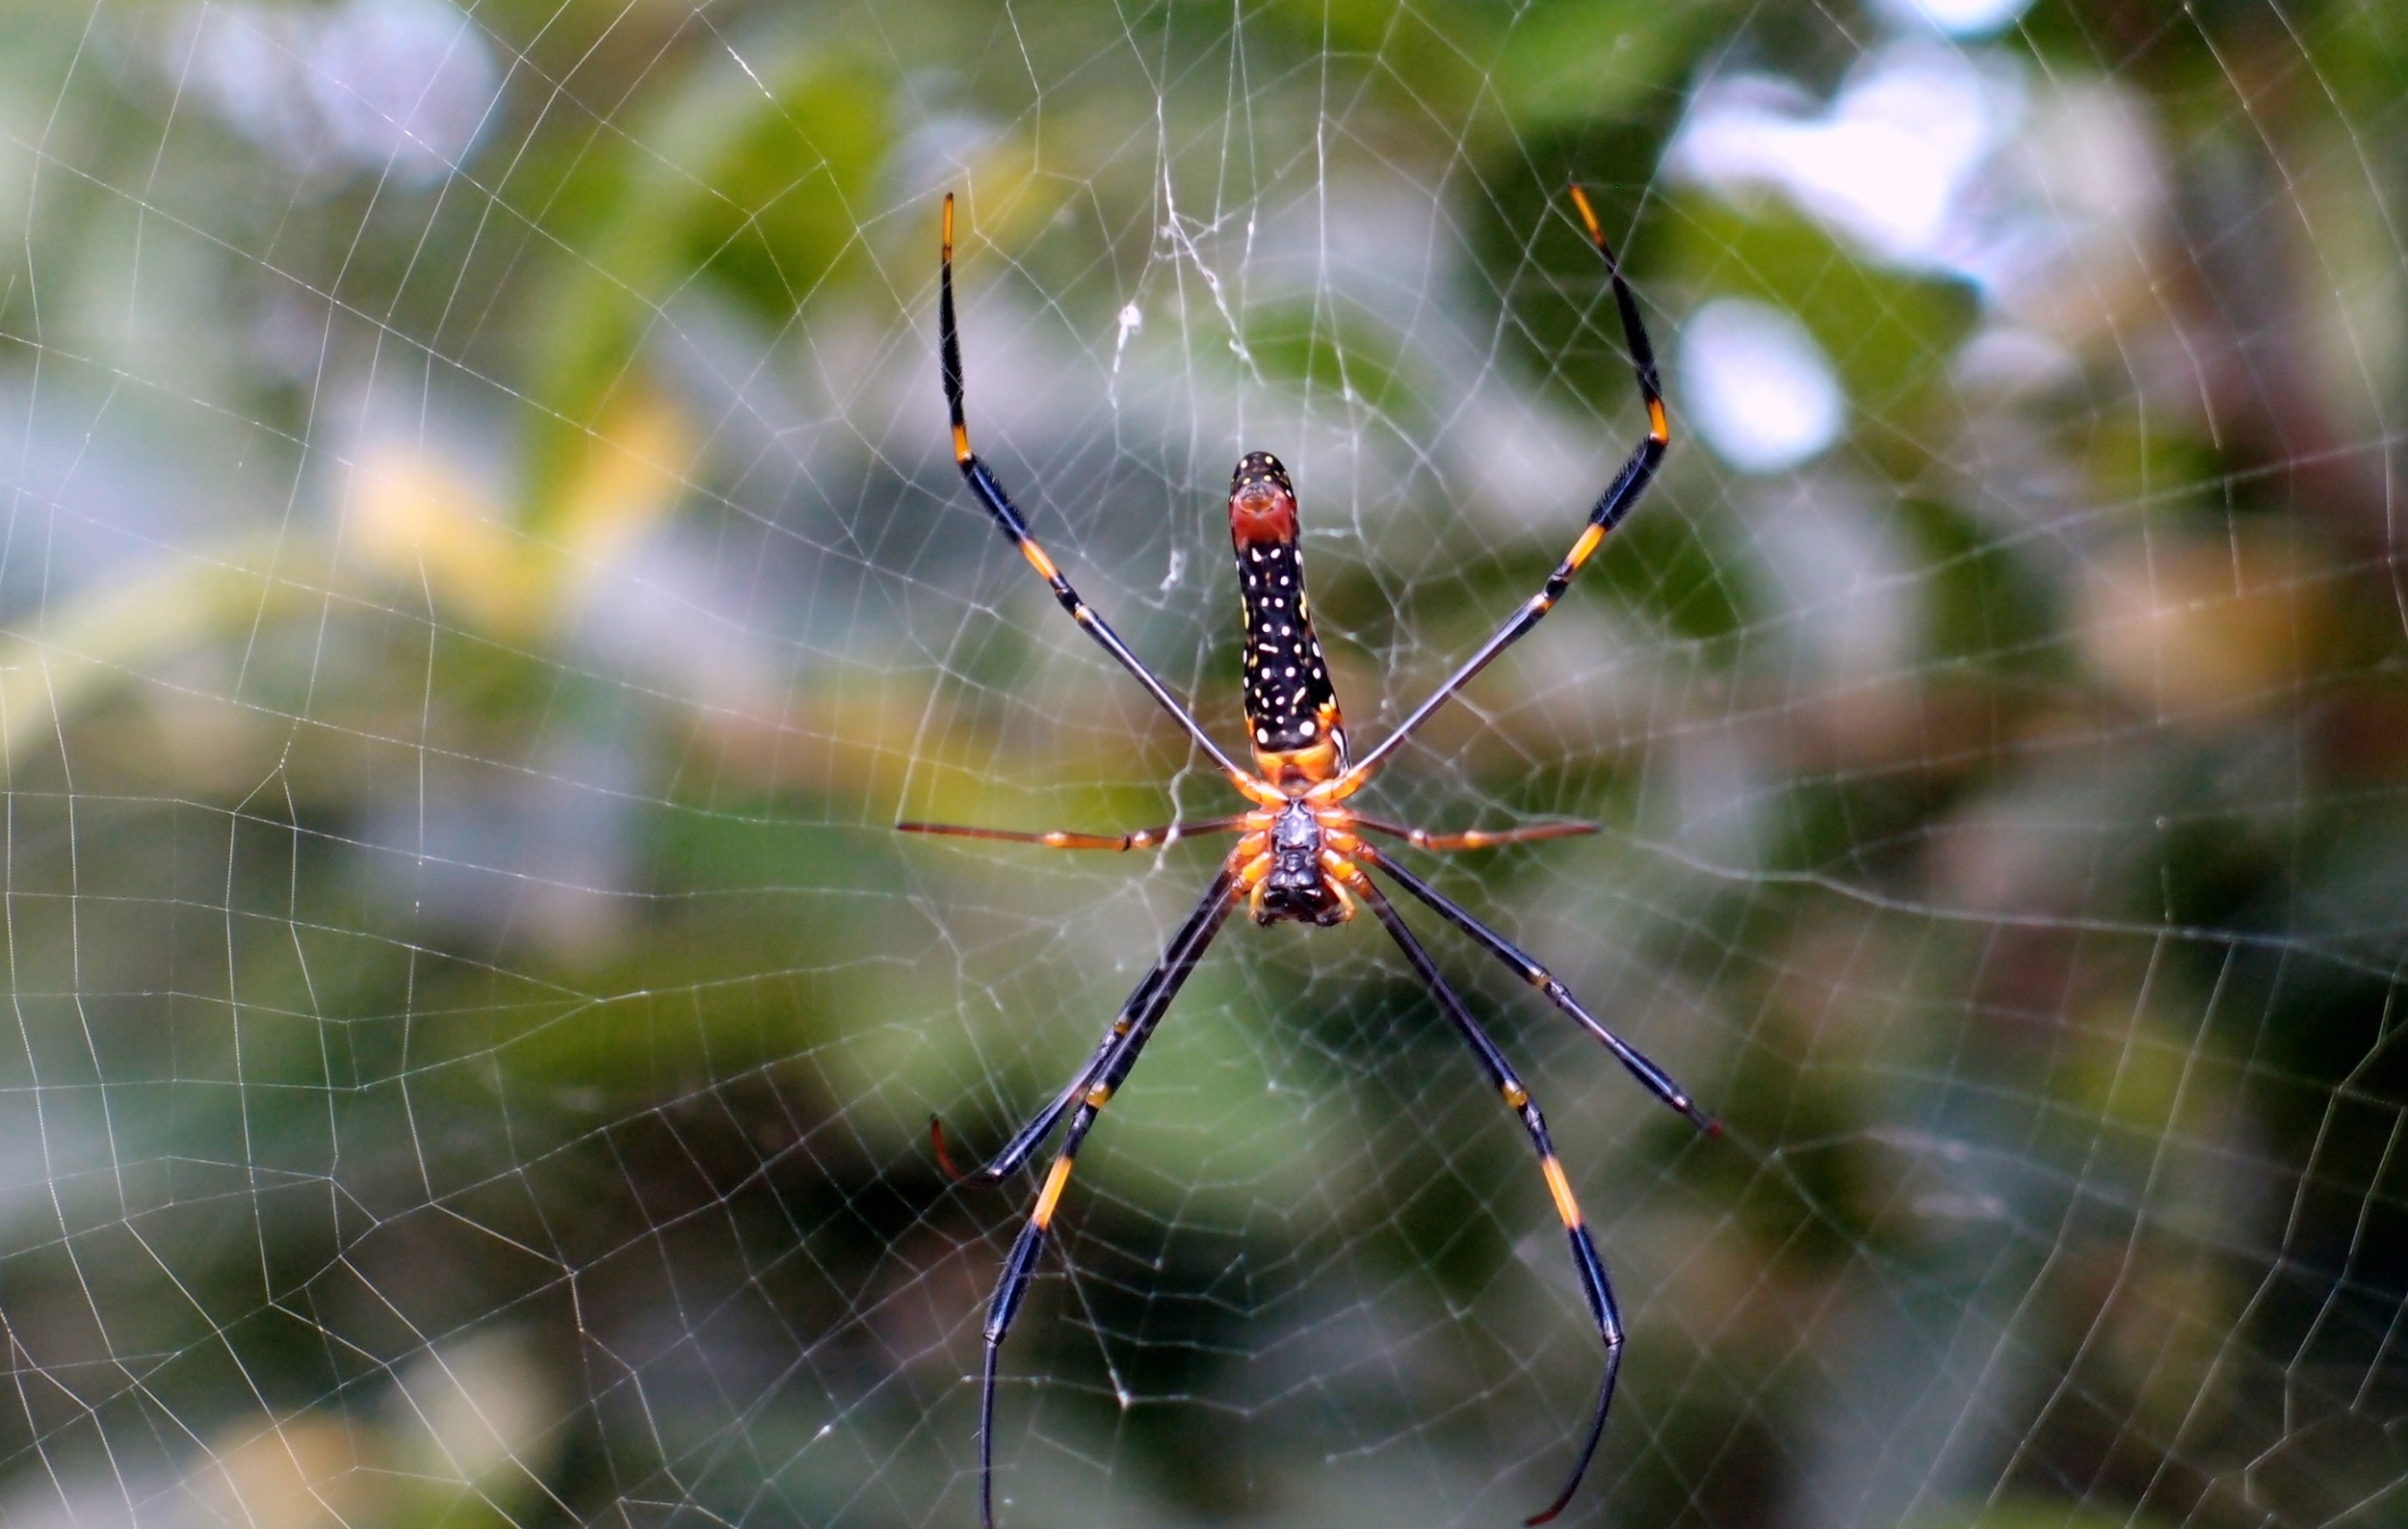 They produce a gigantic web